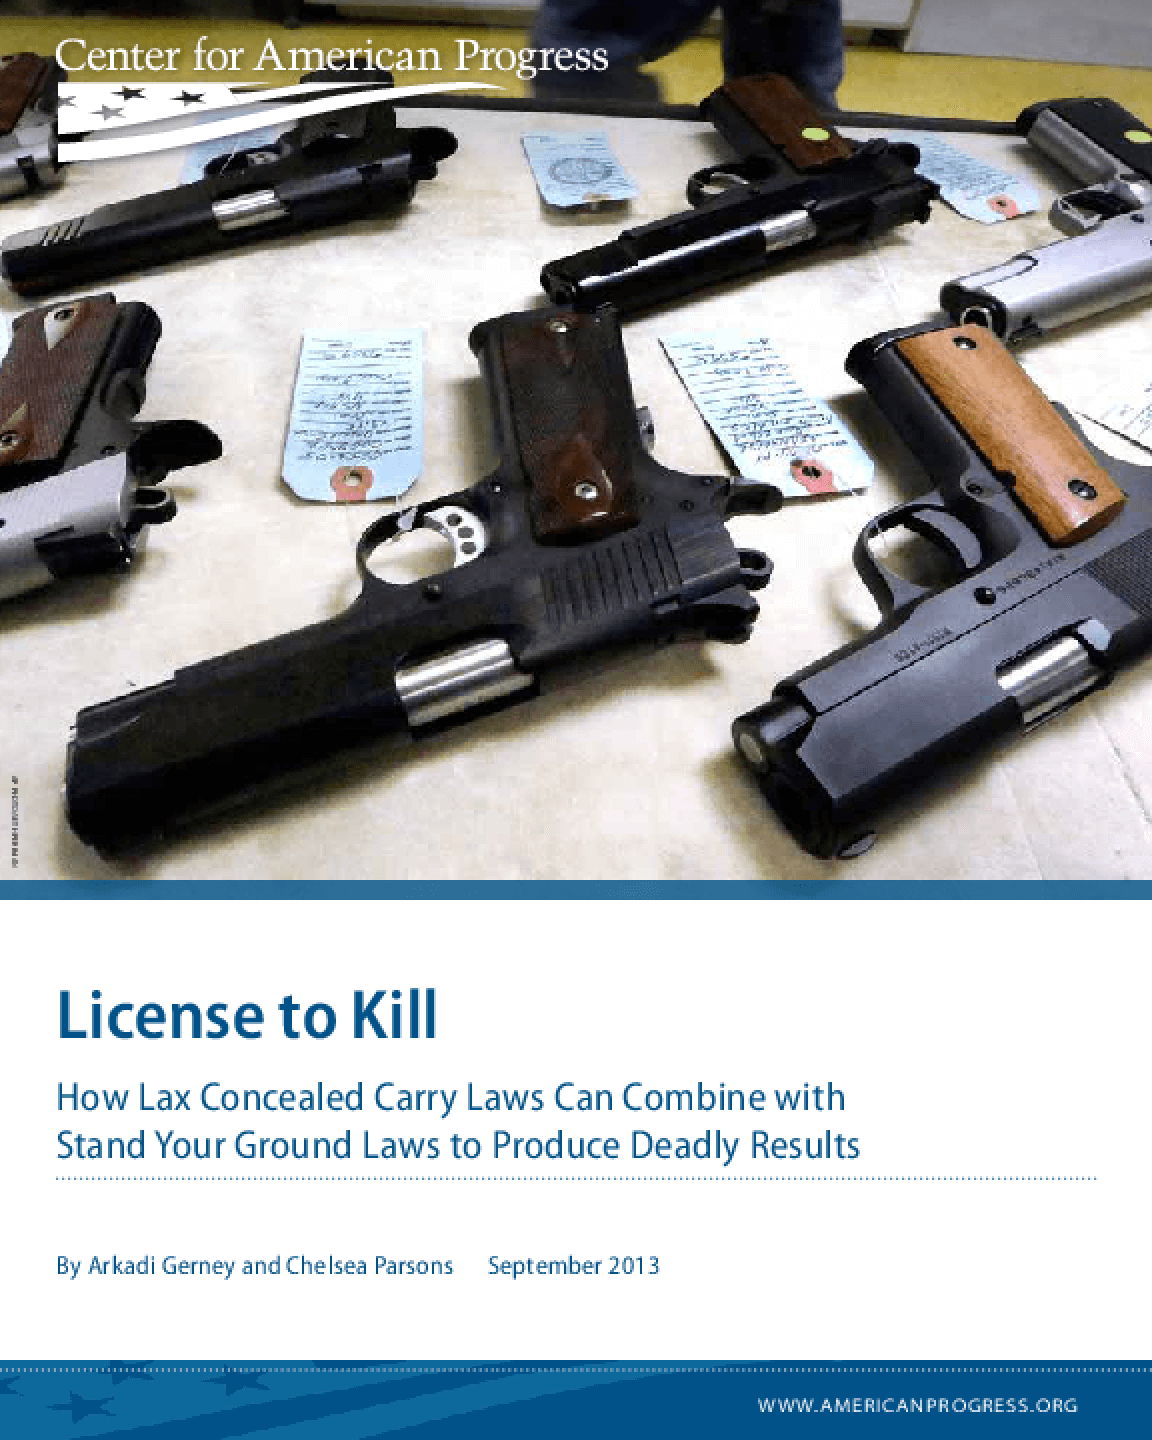 License to Kill: How Lax Concealed Carry Laws Can Combine with Stand Your Ground to Produce Deadly Results